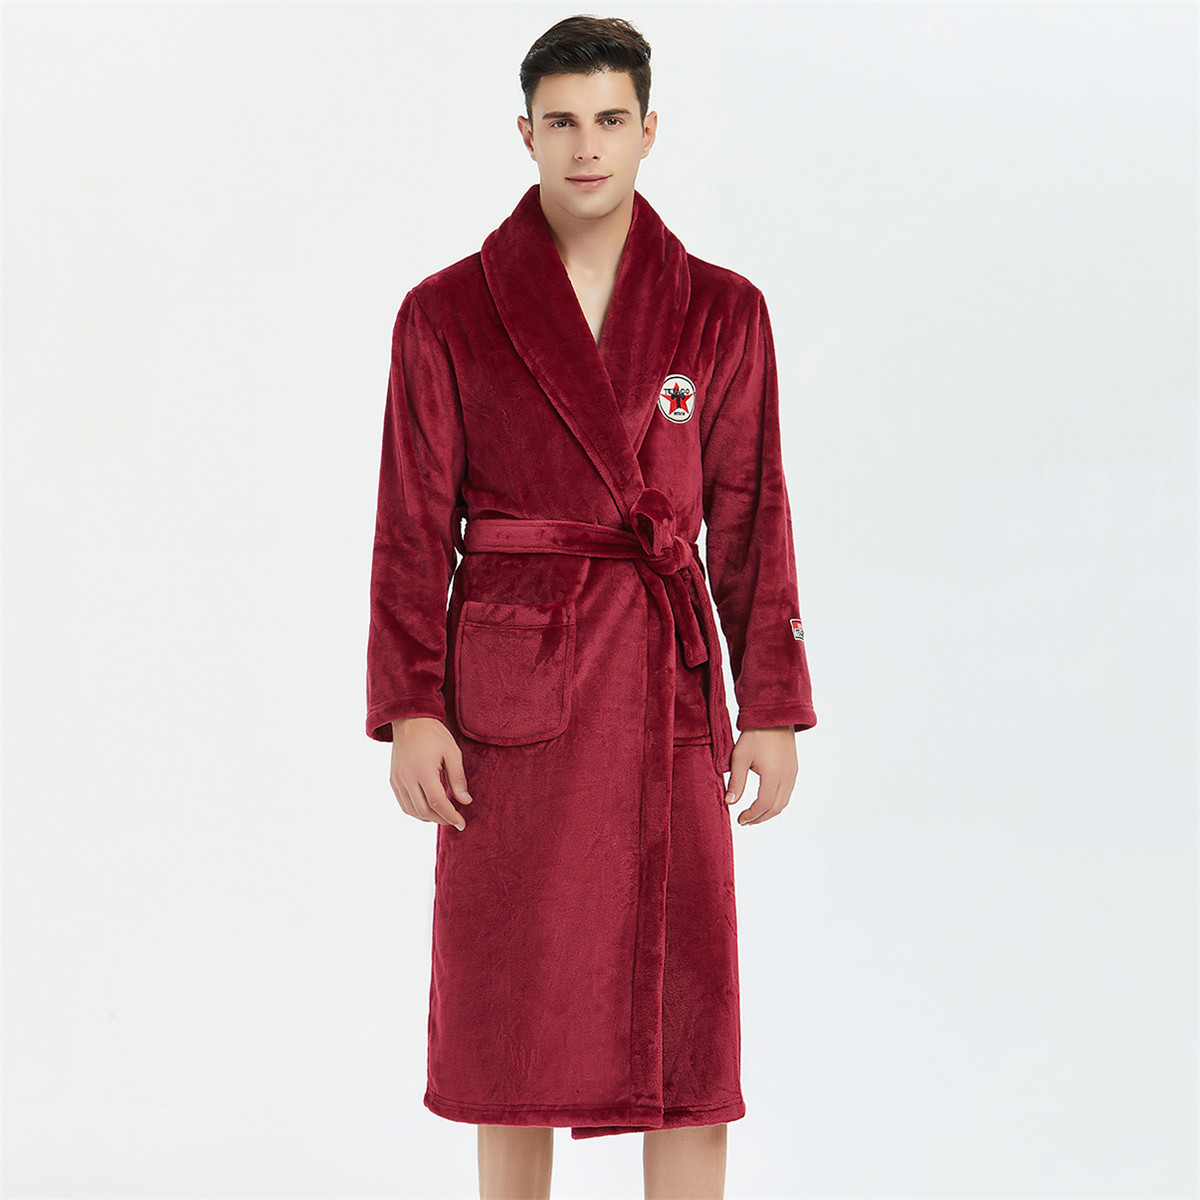 Coral Fleece Men Kimono Robe Flannel Sleepwear Nightgown Short Home Clothing Burgundy Nightwear Home Wear Winter Warm Bathrobe